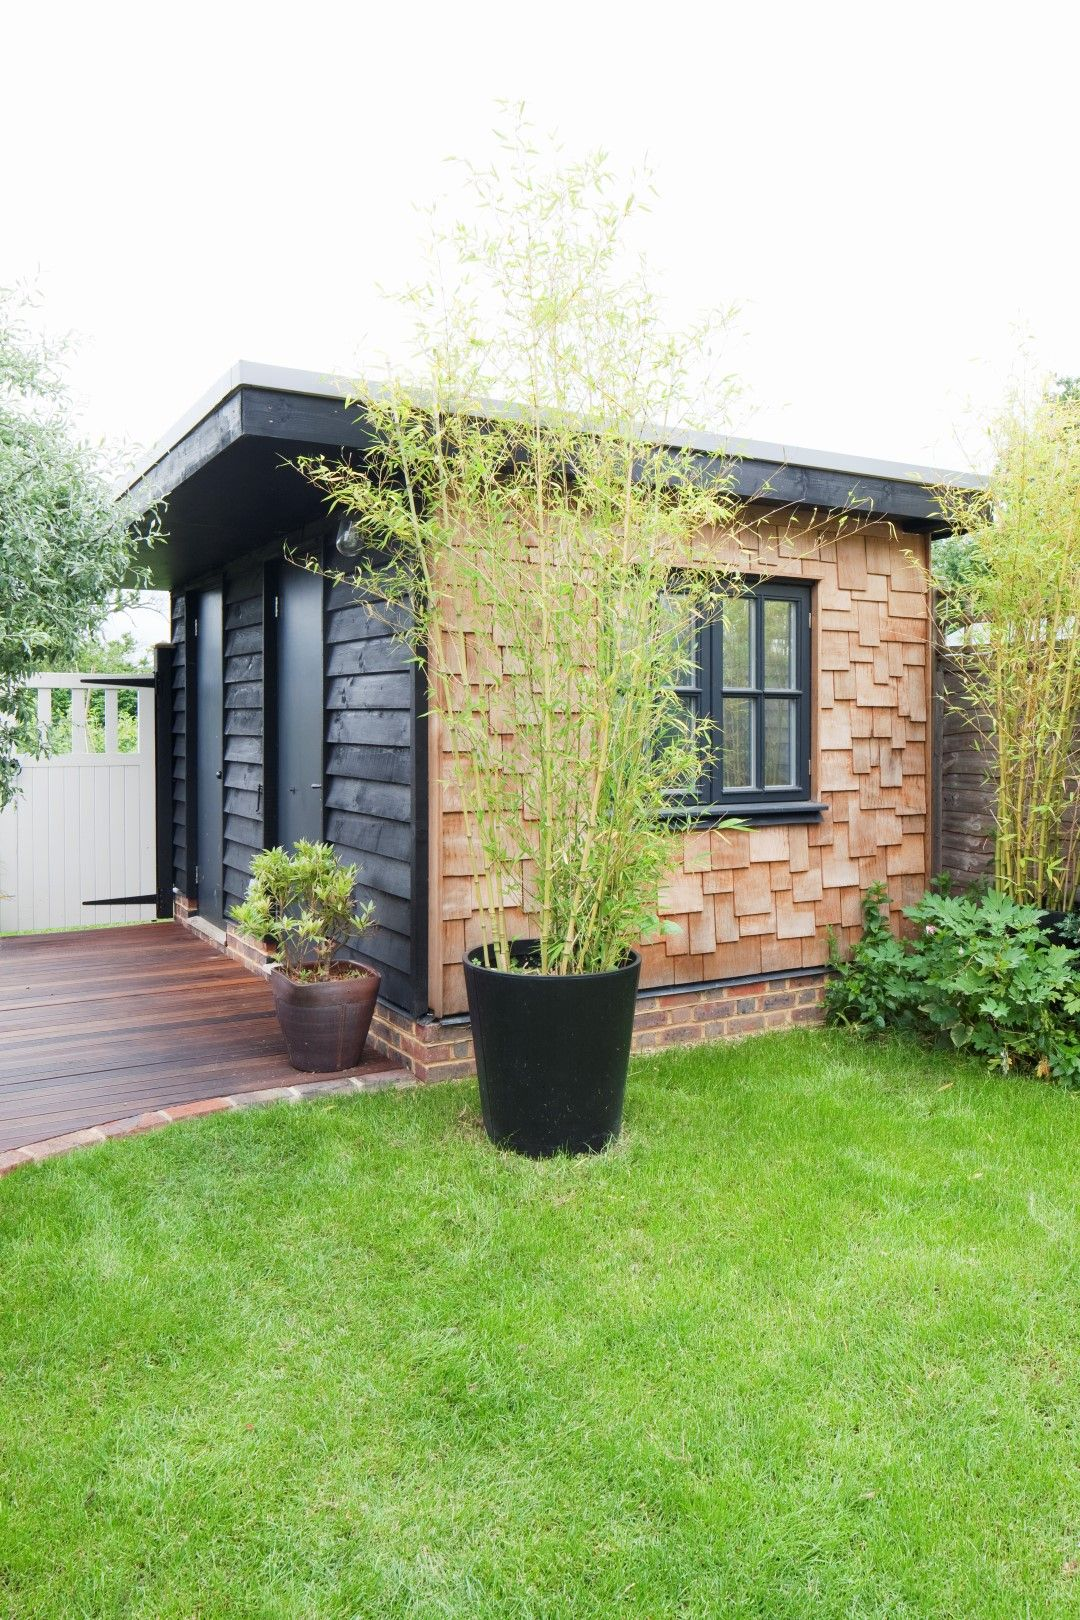 Flat roof garden shed / office | Timber cladding ...